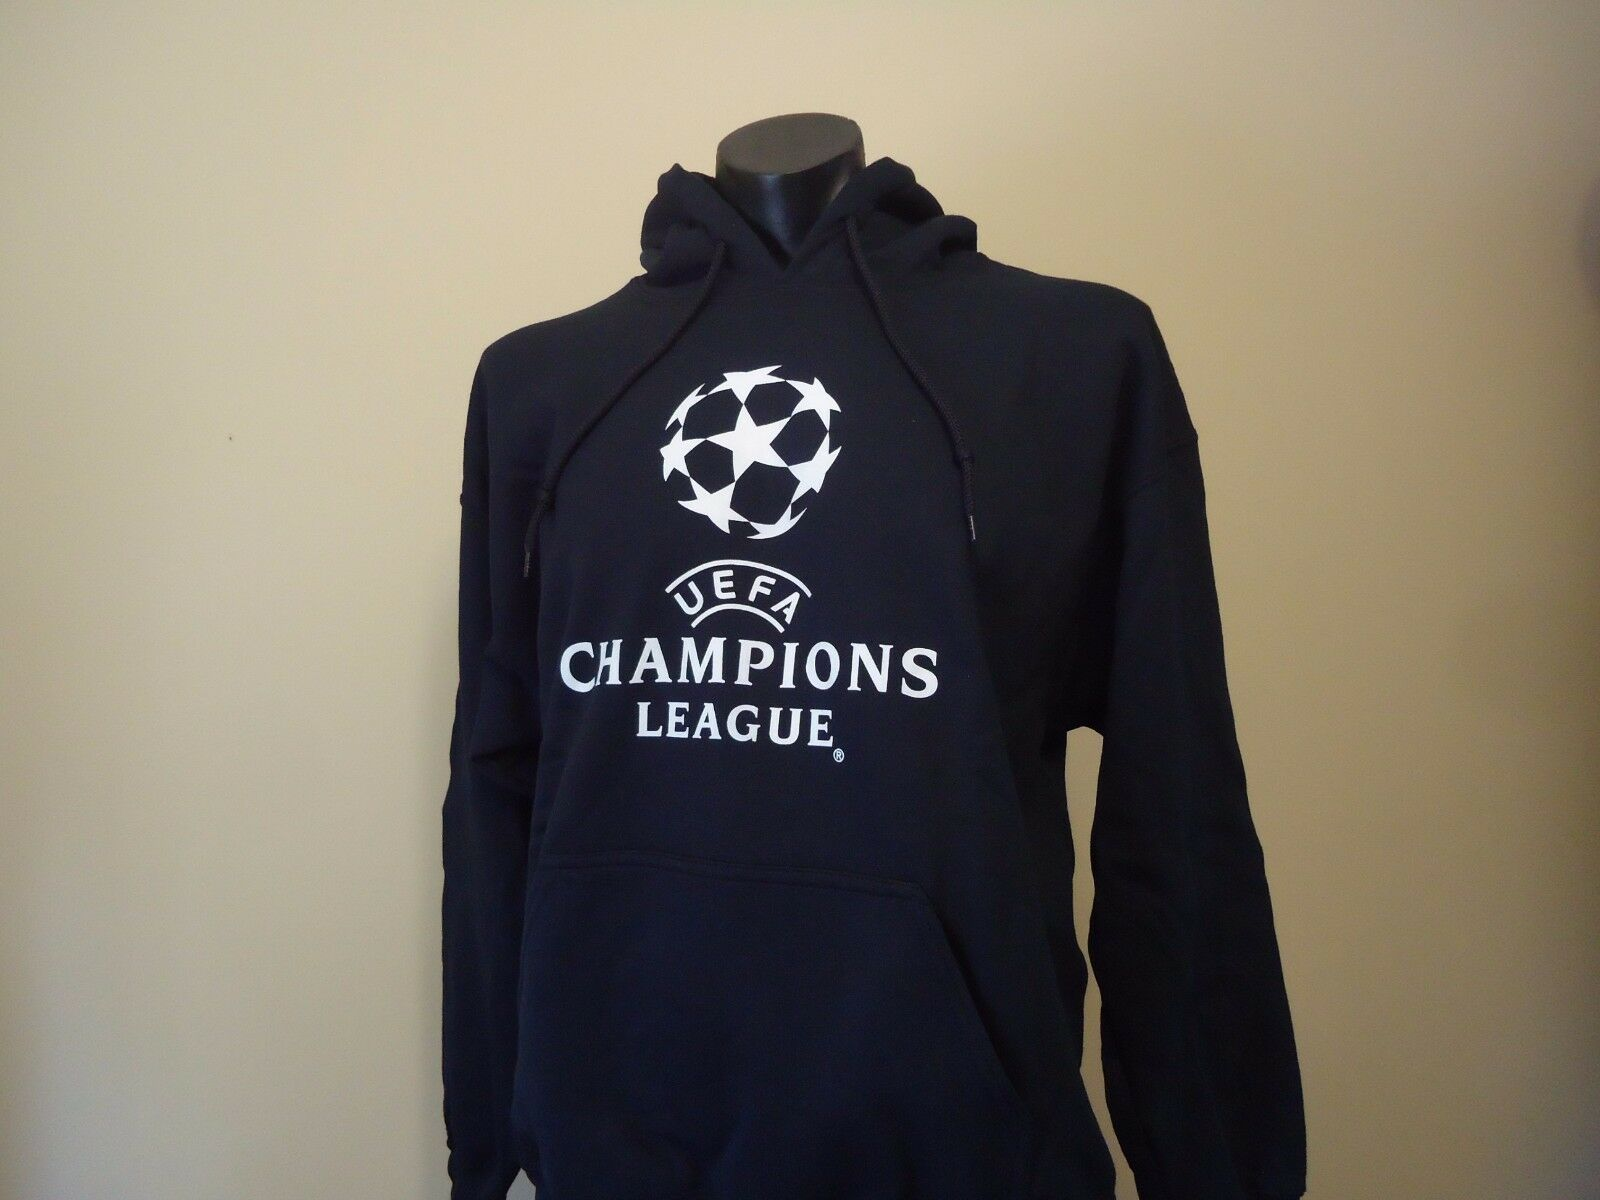 UEFA CHAMPIONS LEAGUE OFFICIAL LICENSED MENS JUMPER HOODIE LARGE NEW